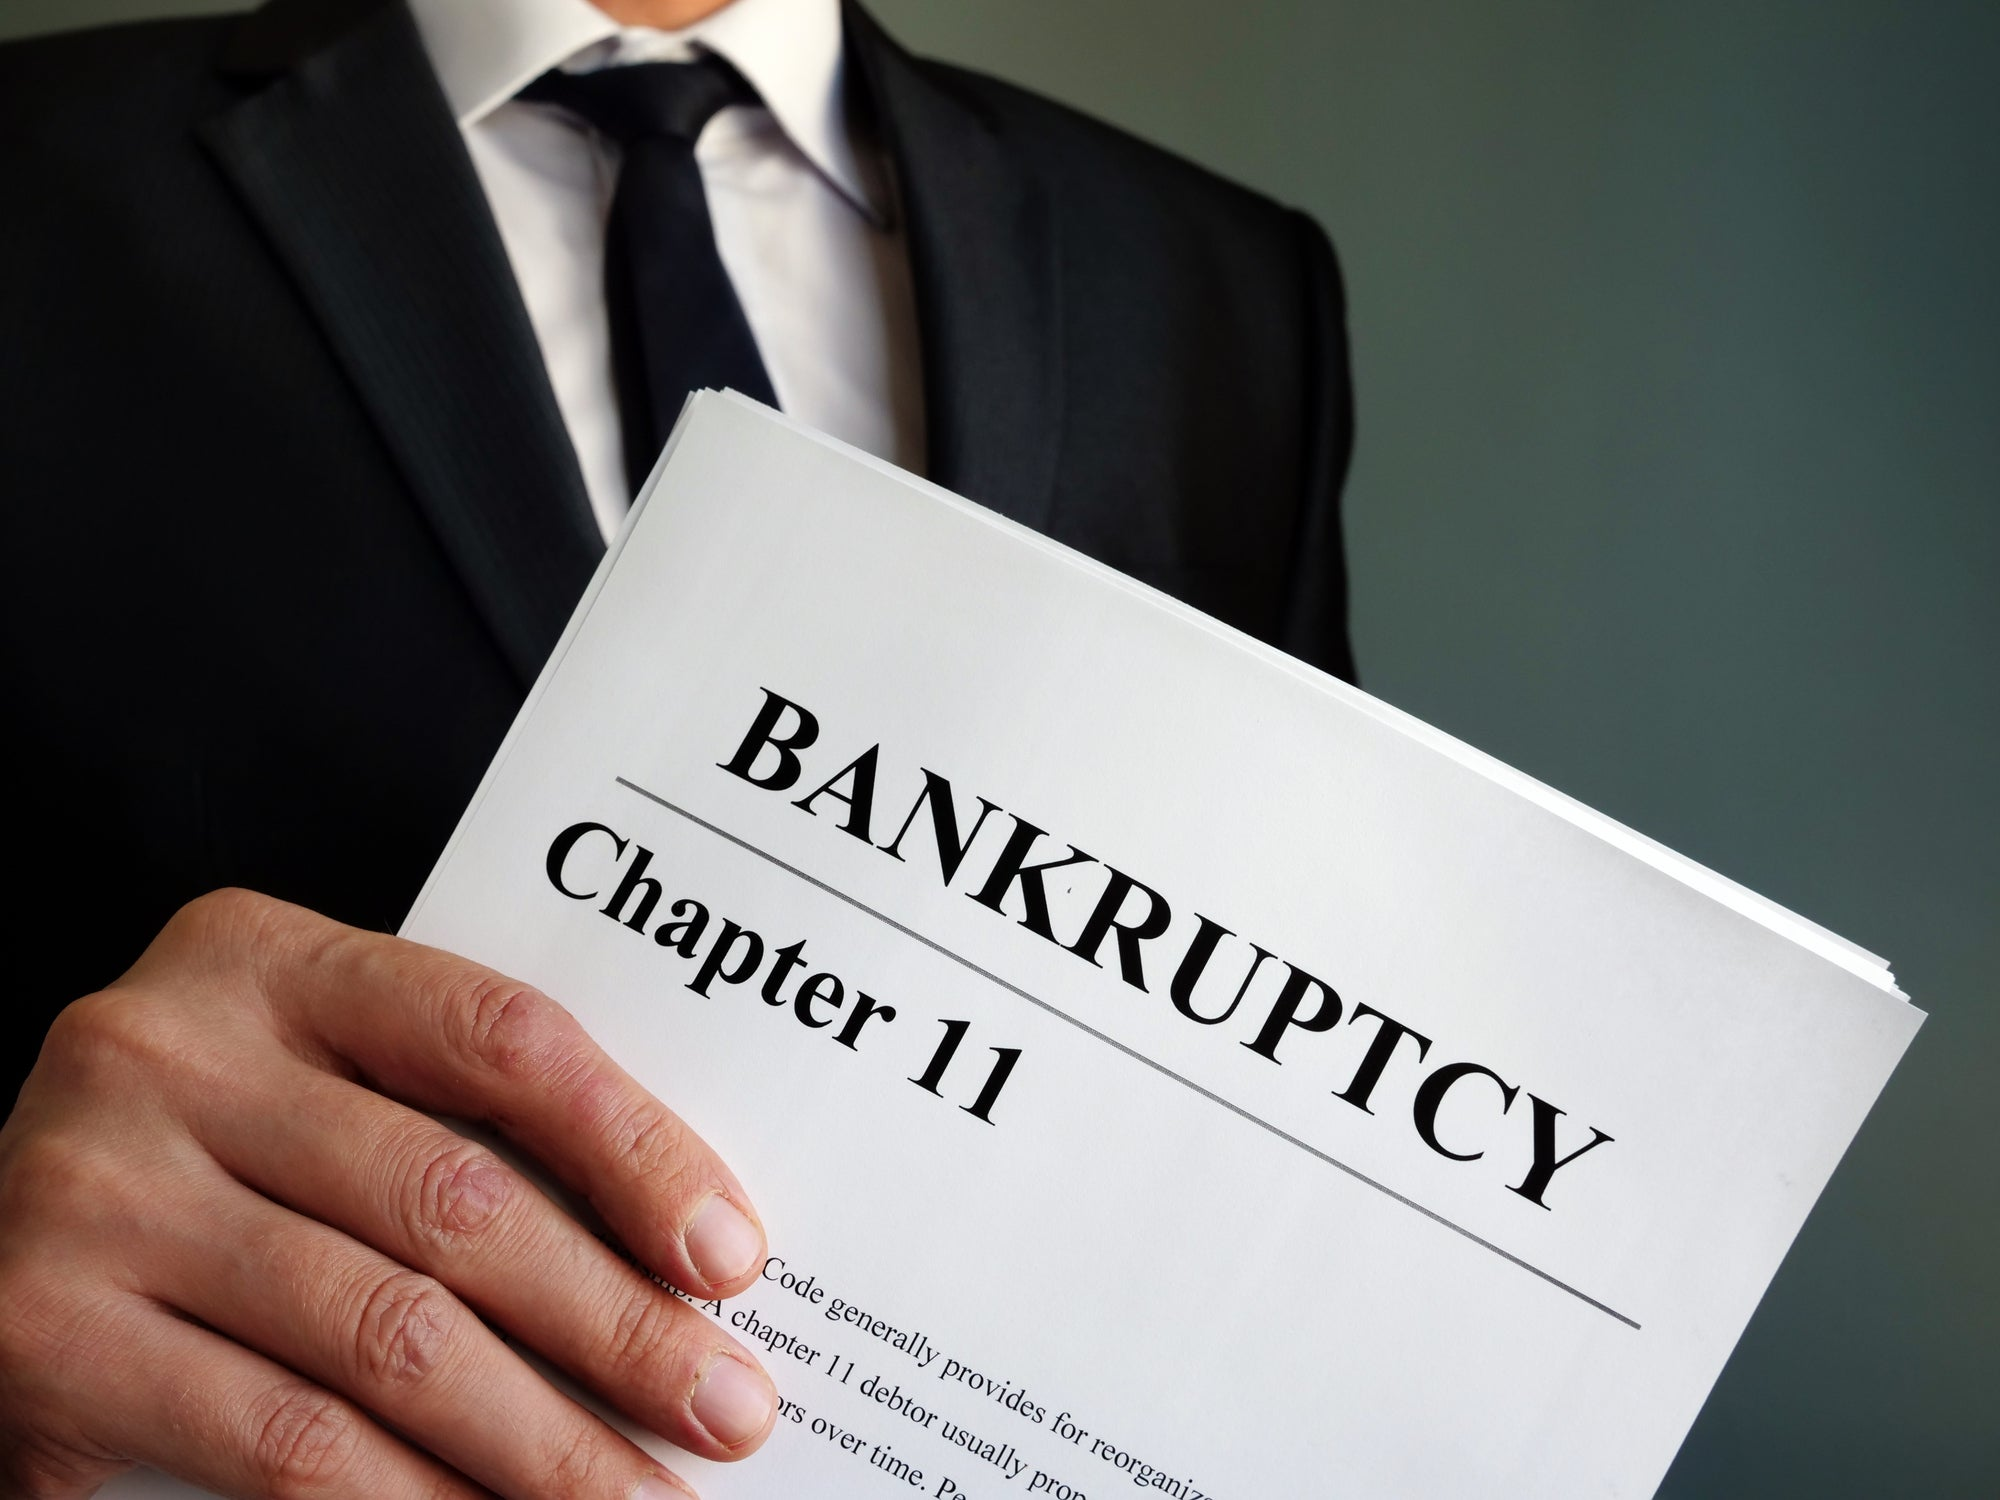 2 Stocks That Could Go Bankrupt in 2021